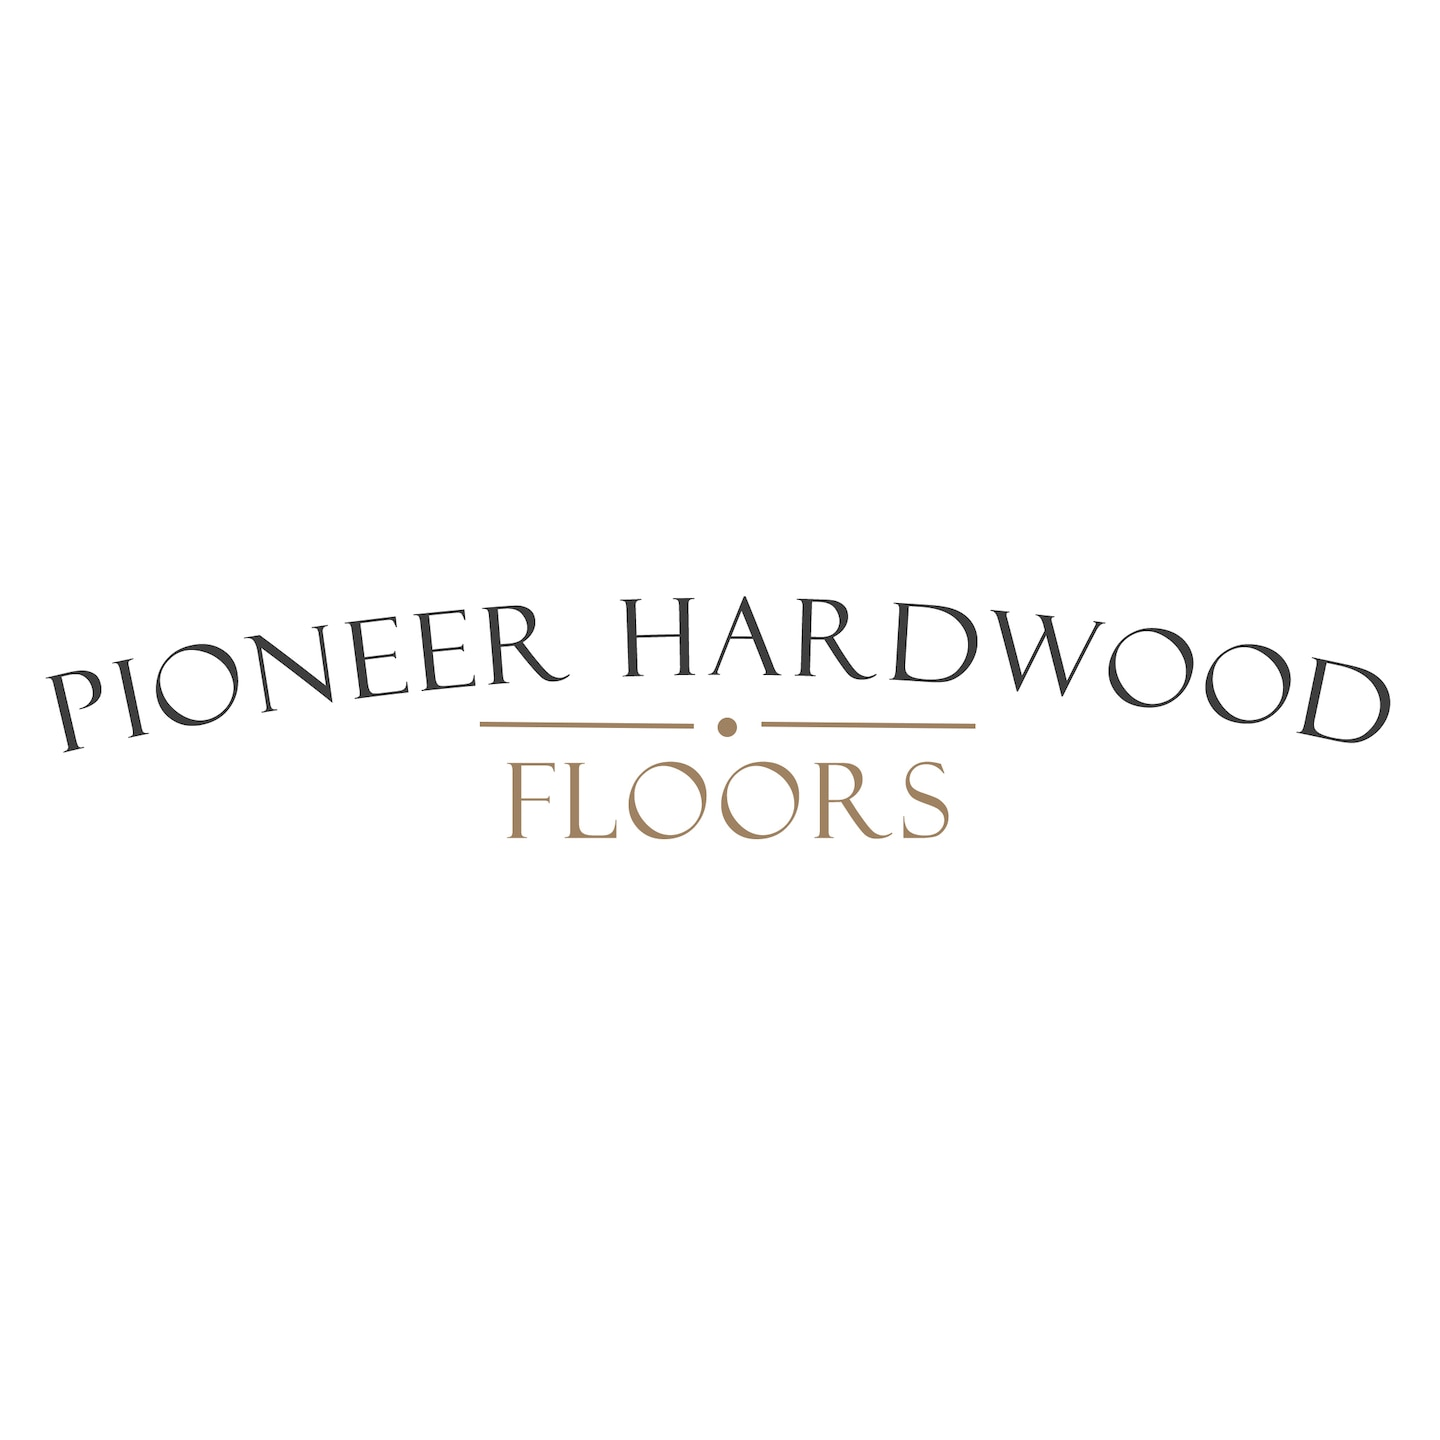 Pioneer Hardwood Floors